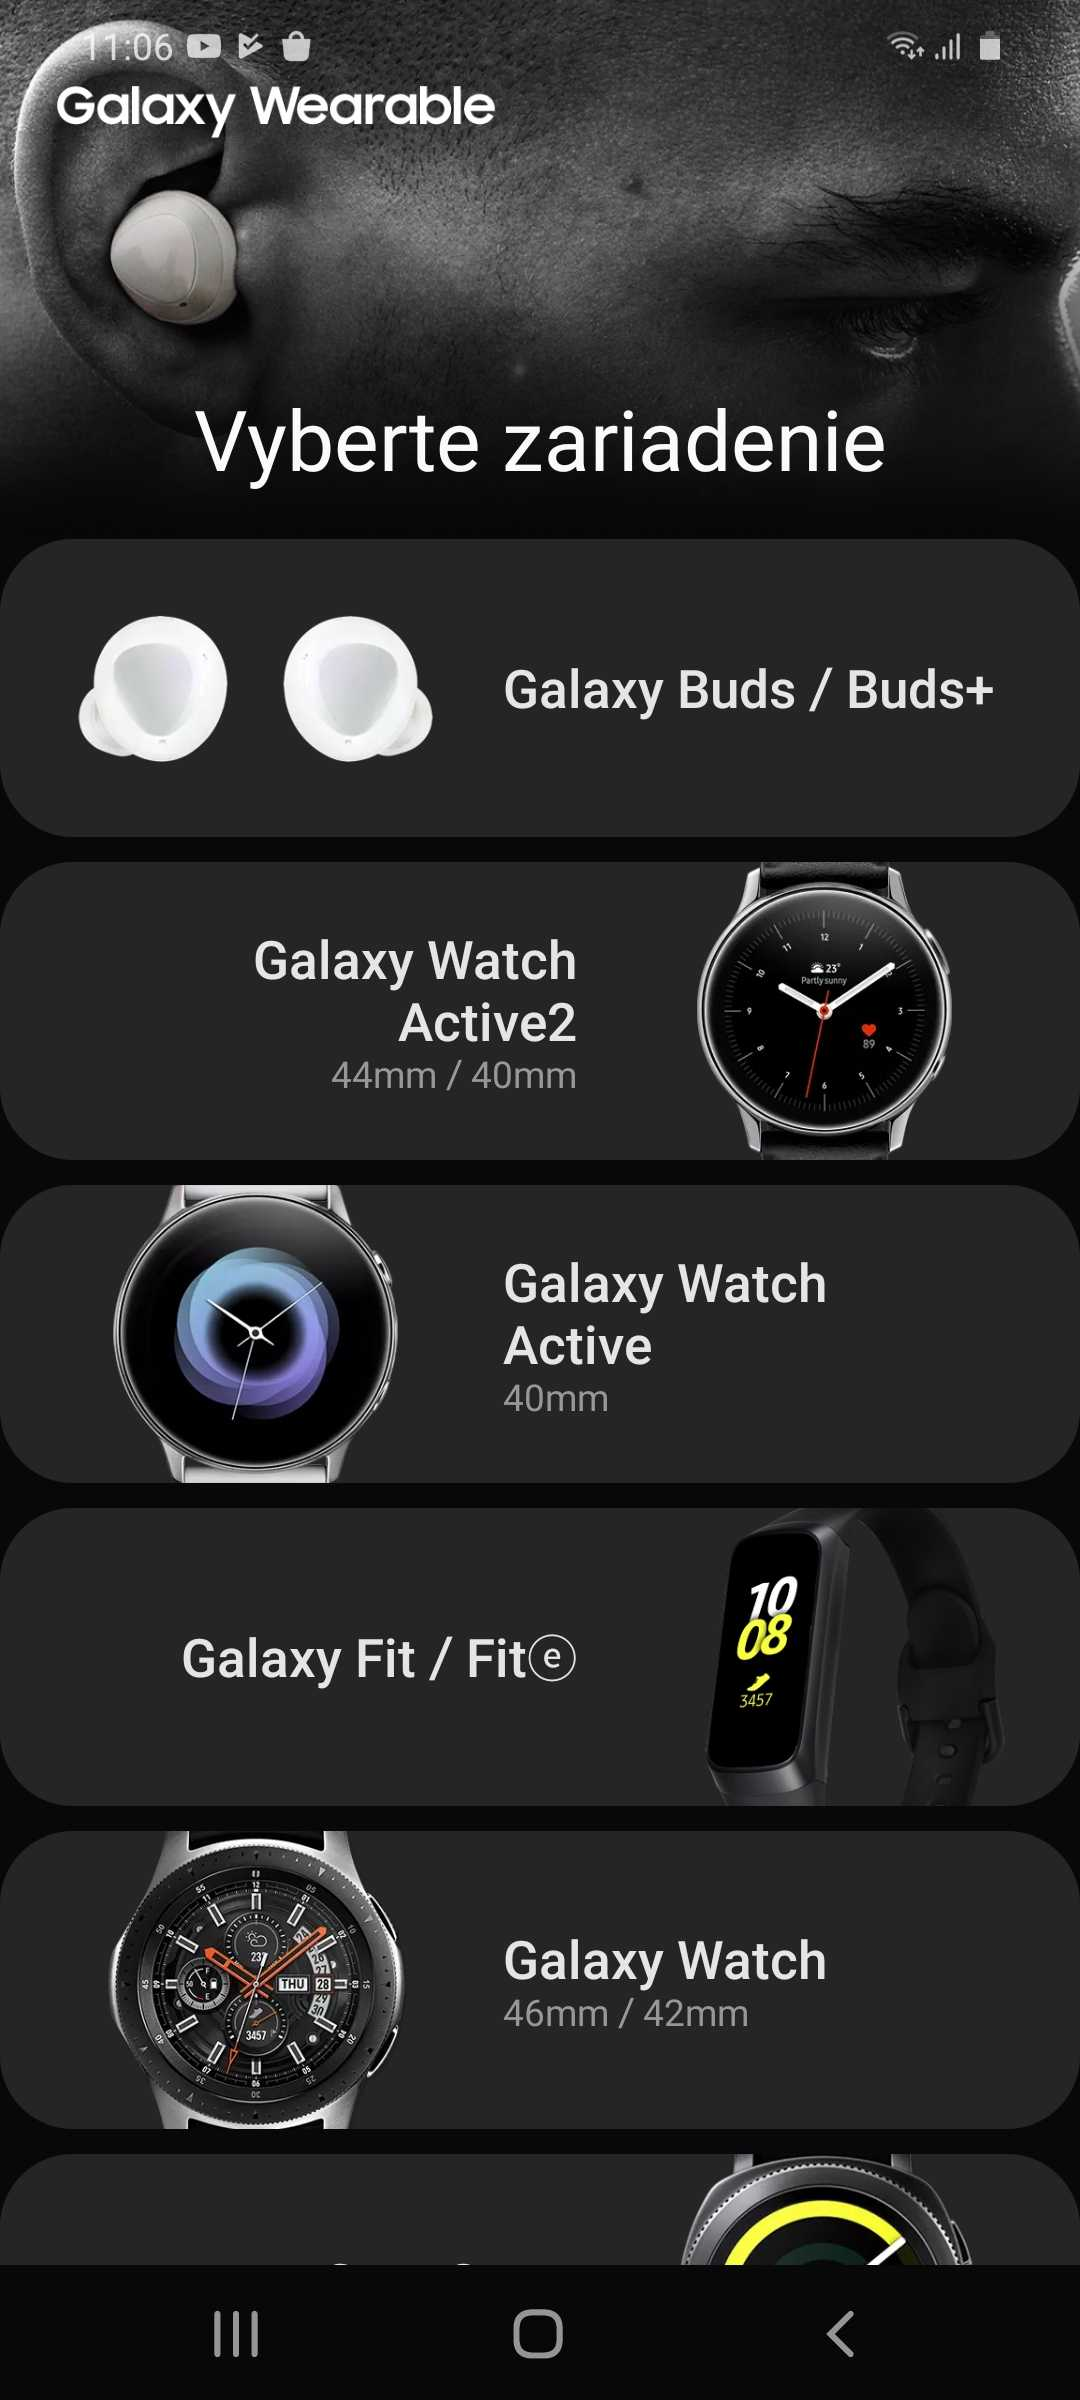 Screenshot 20200225 110653 Galaxy Wearable